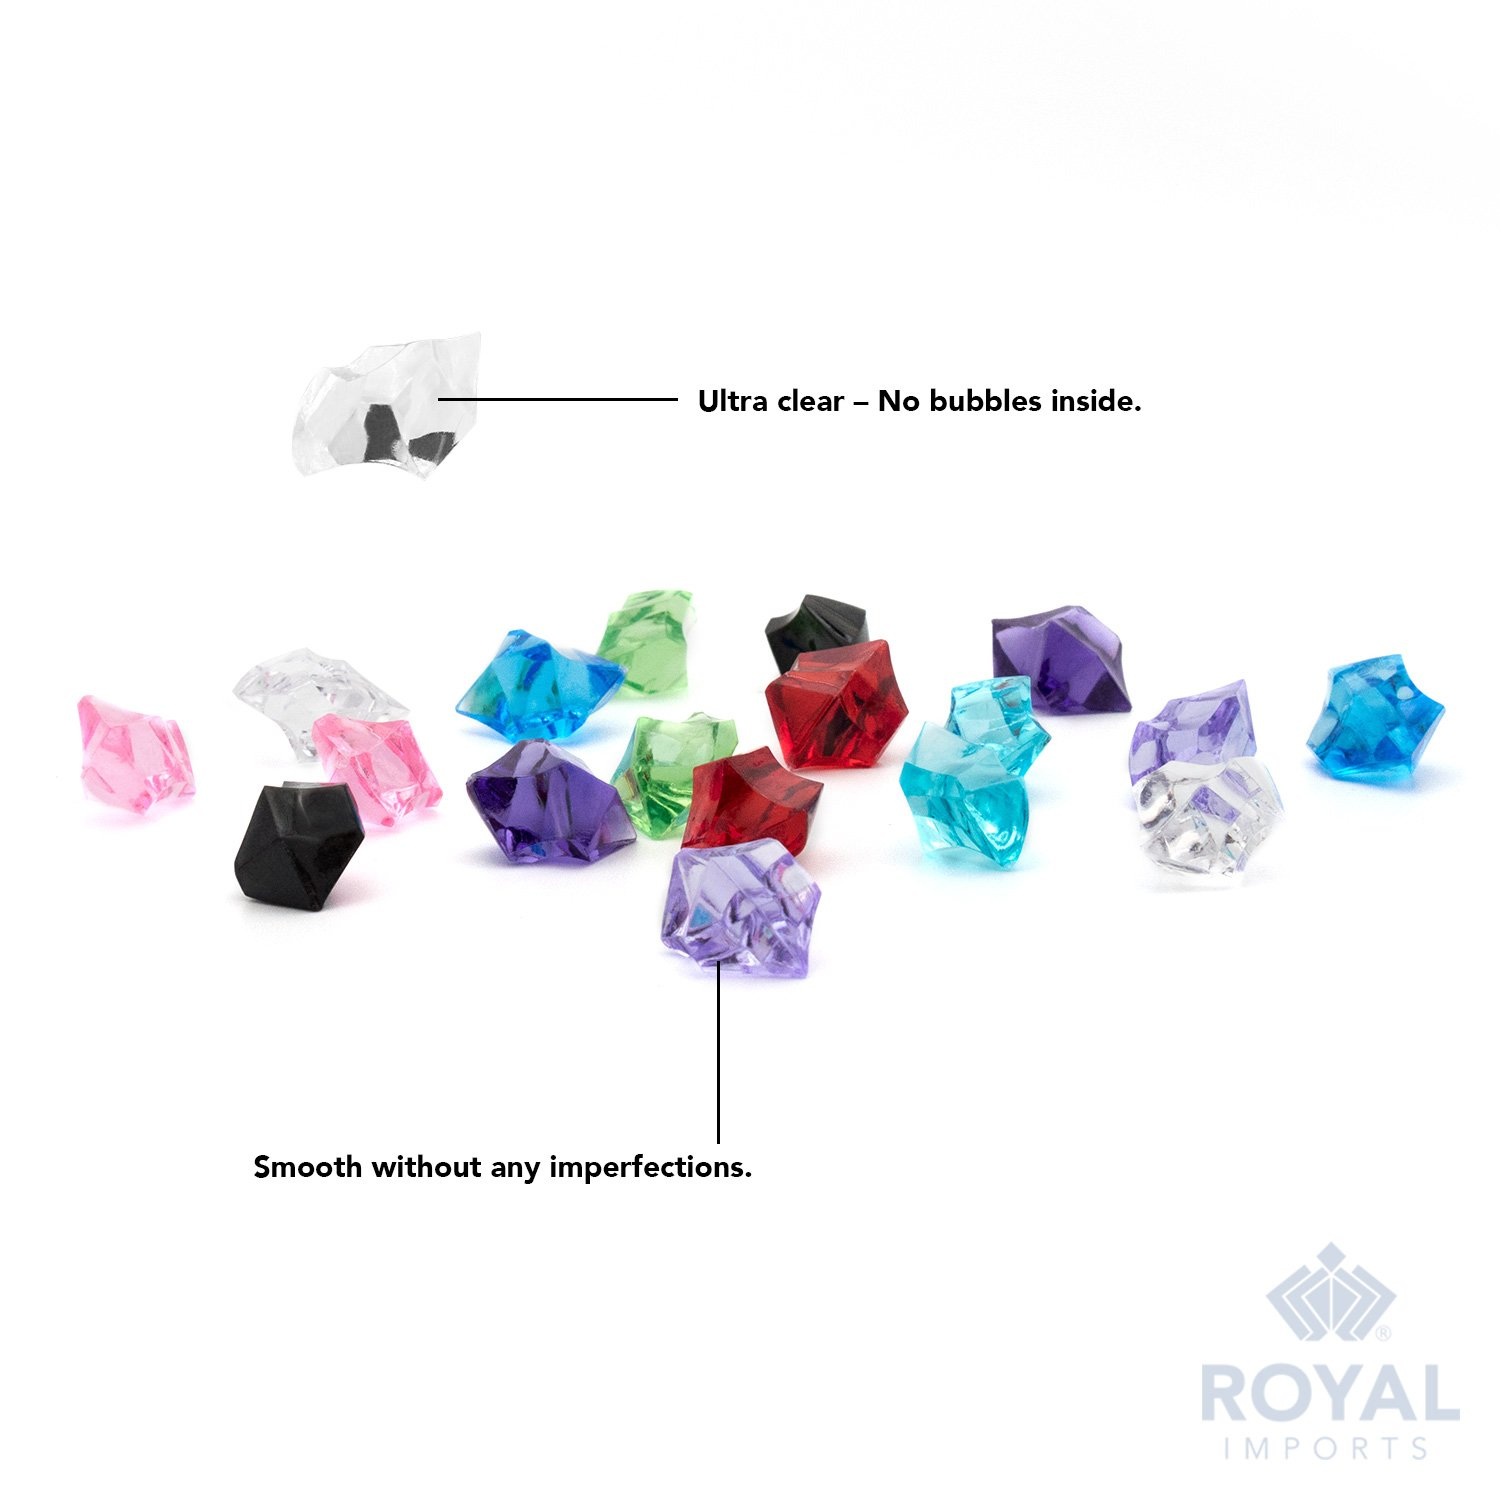 Wedding Acrylic Gems Ice Crystal Rocks for Vase Fillers 3 LBS Party Decoration - Aqua Party Table Scatter Approx 580-600 gems Crafts by Royal Imports Photography